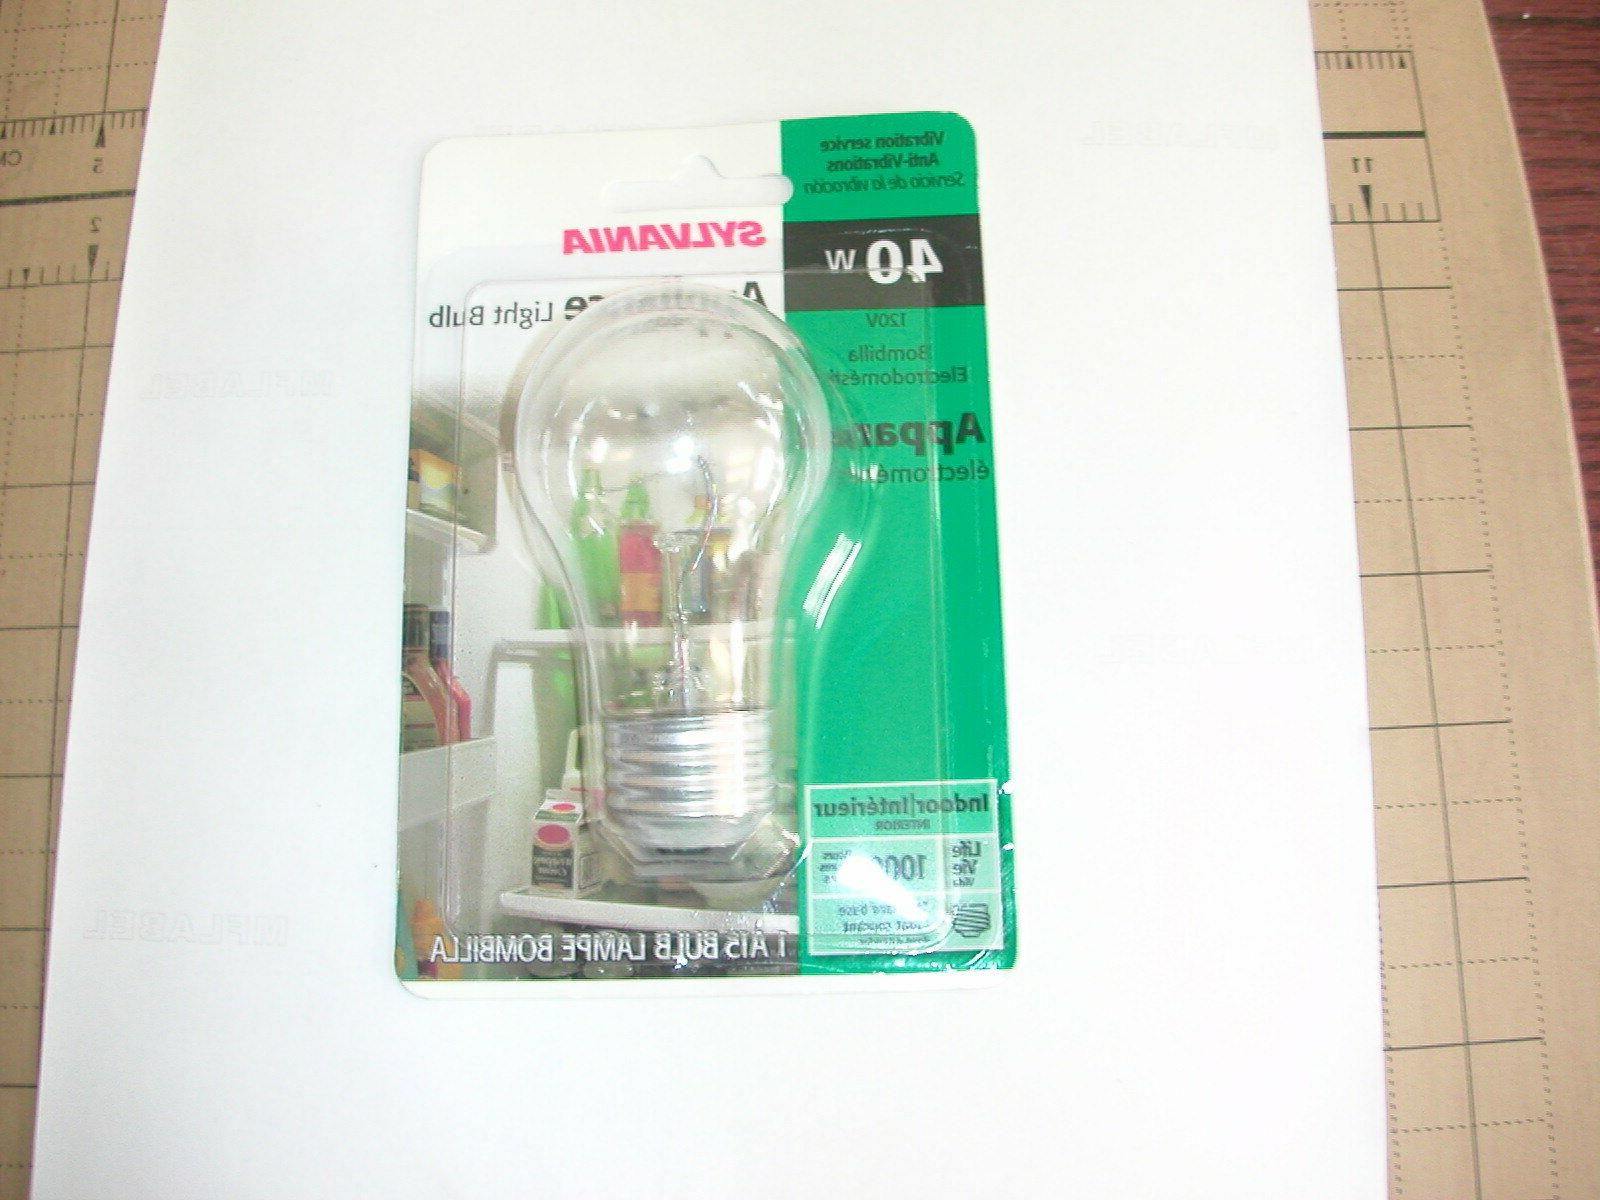 SYLVANIA 40W A15 APPLIANCE BULB CLEAR PACKAGE OF 2